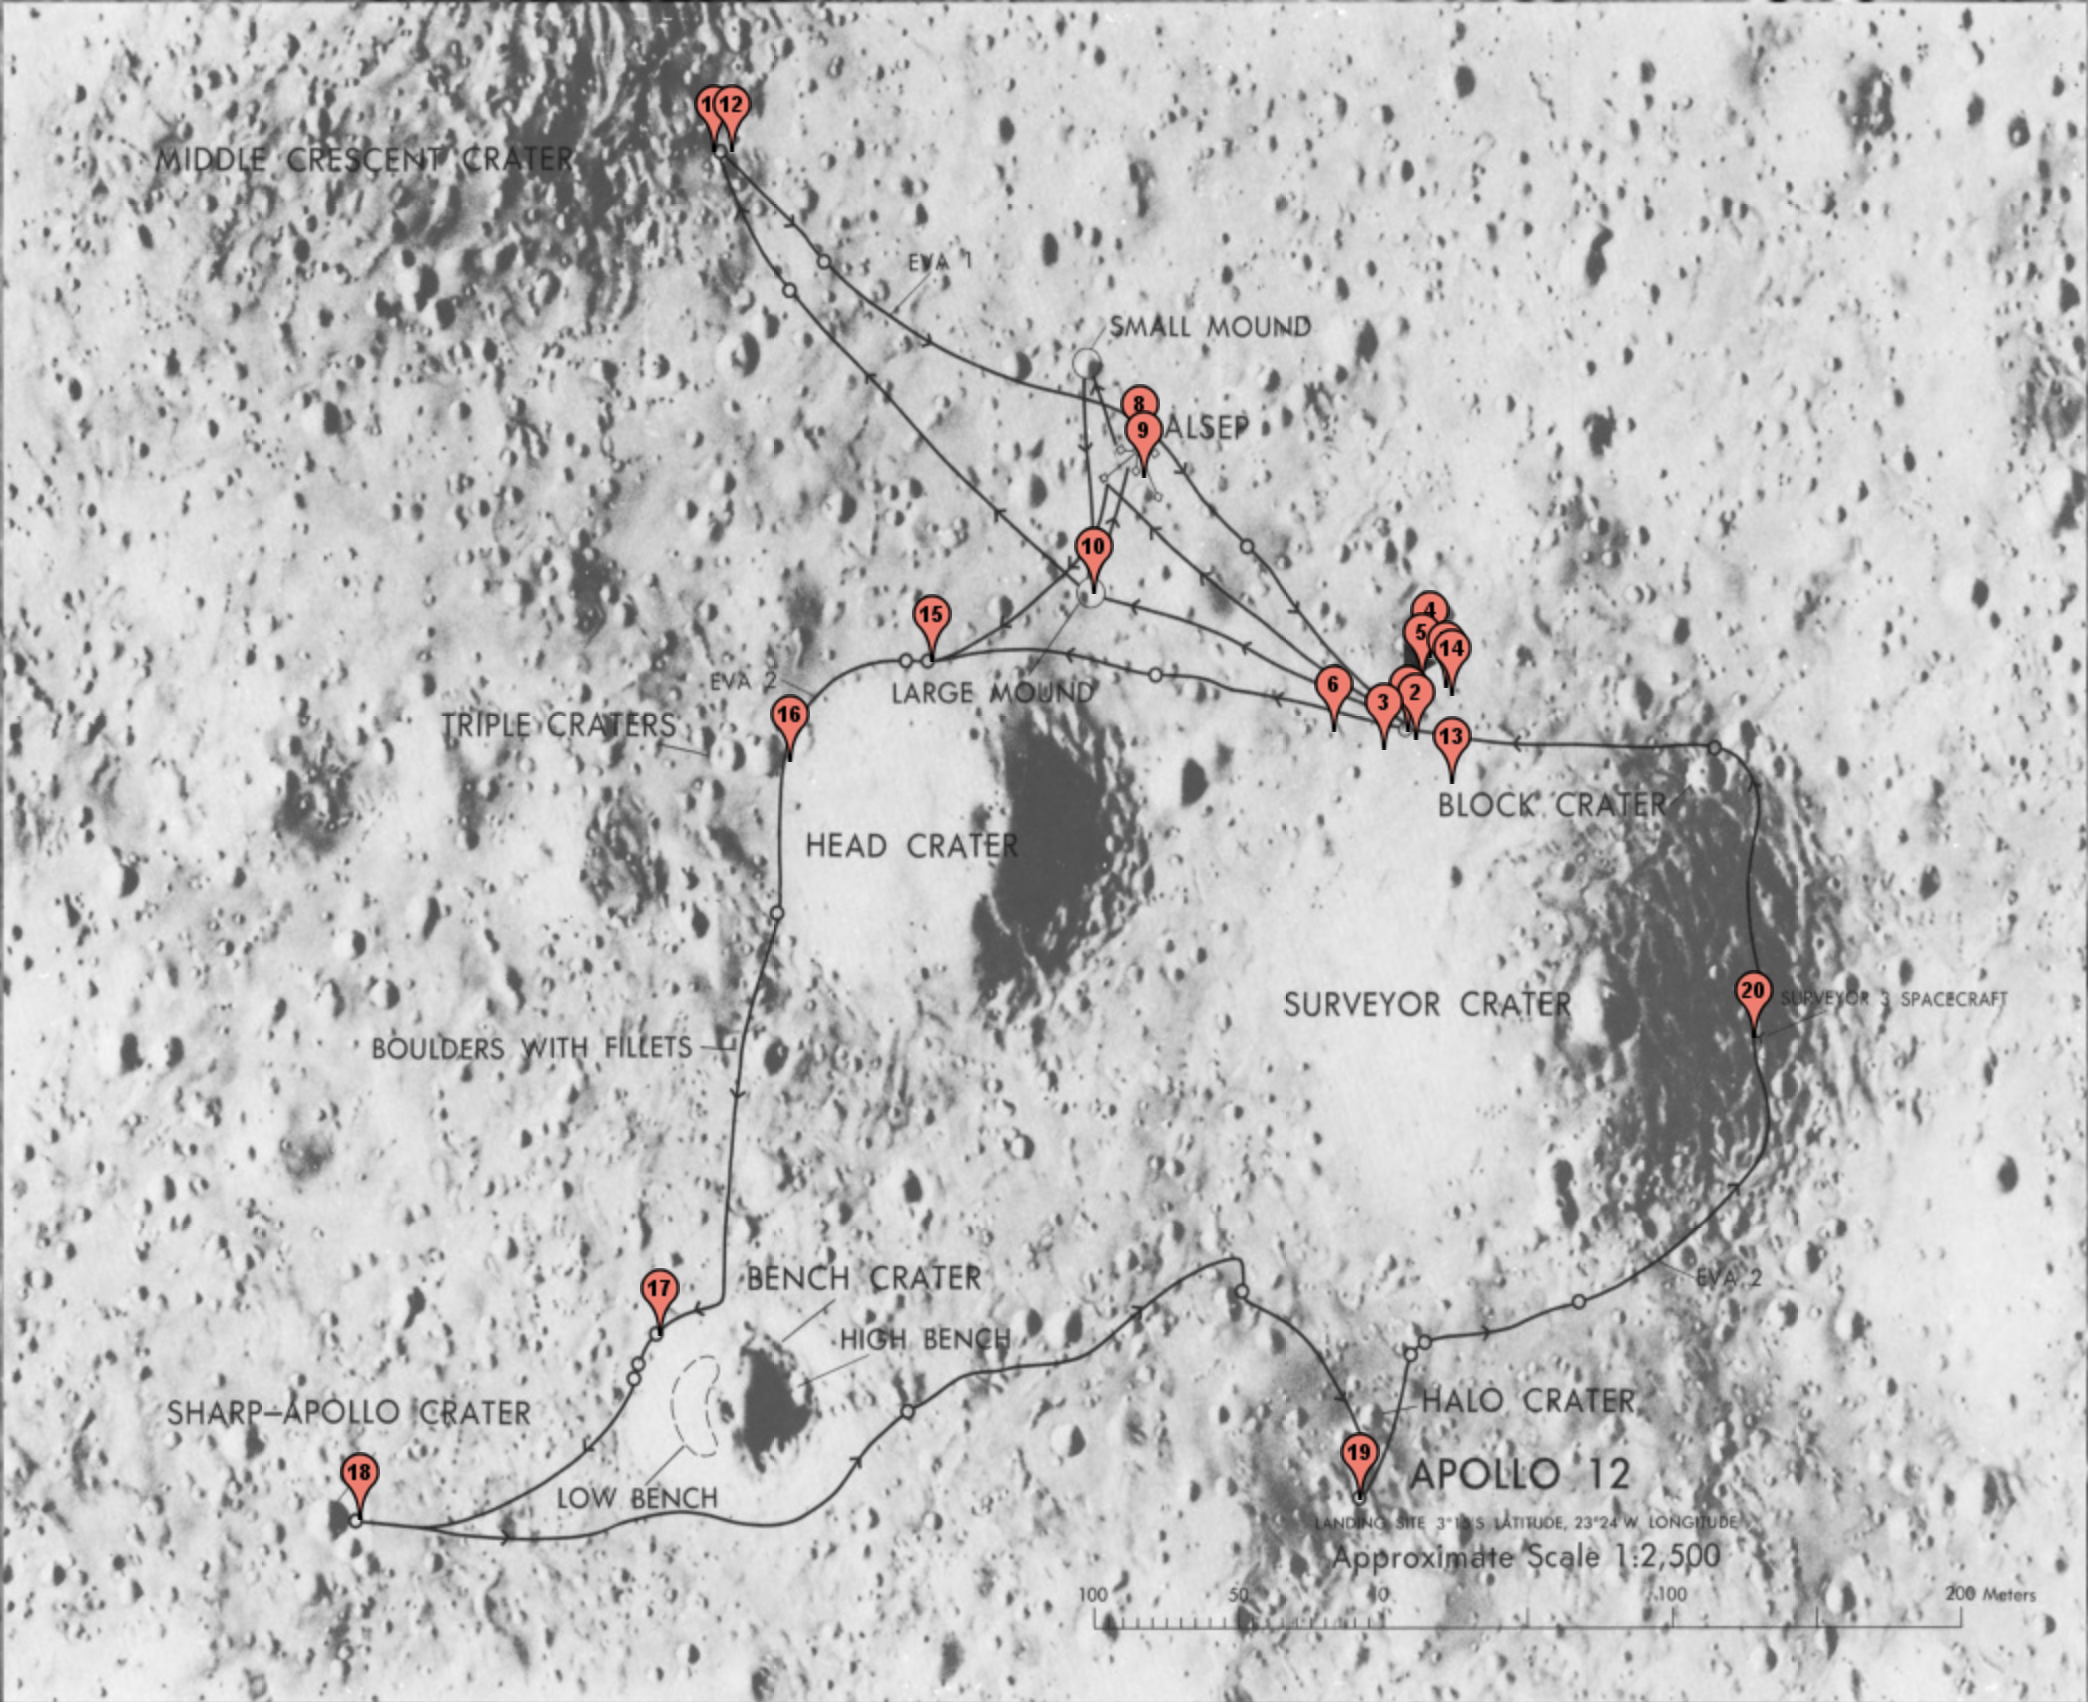 _images/apollo12-map.png